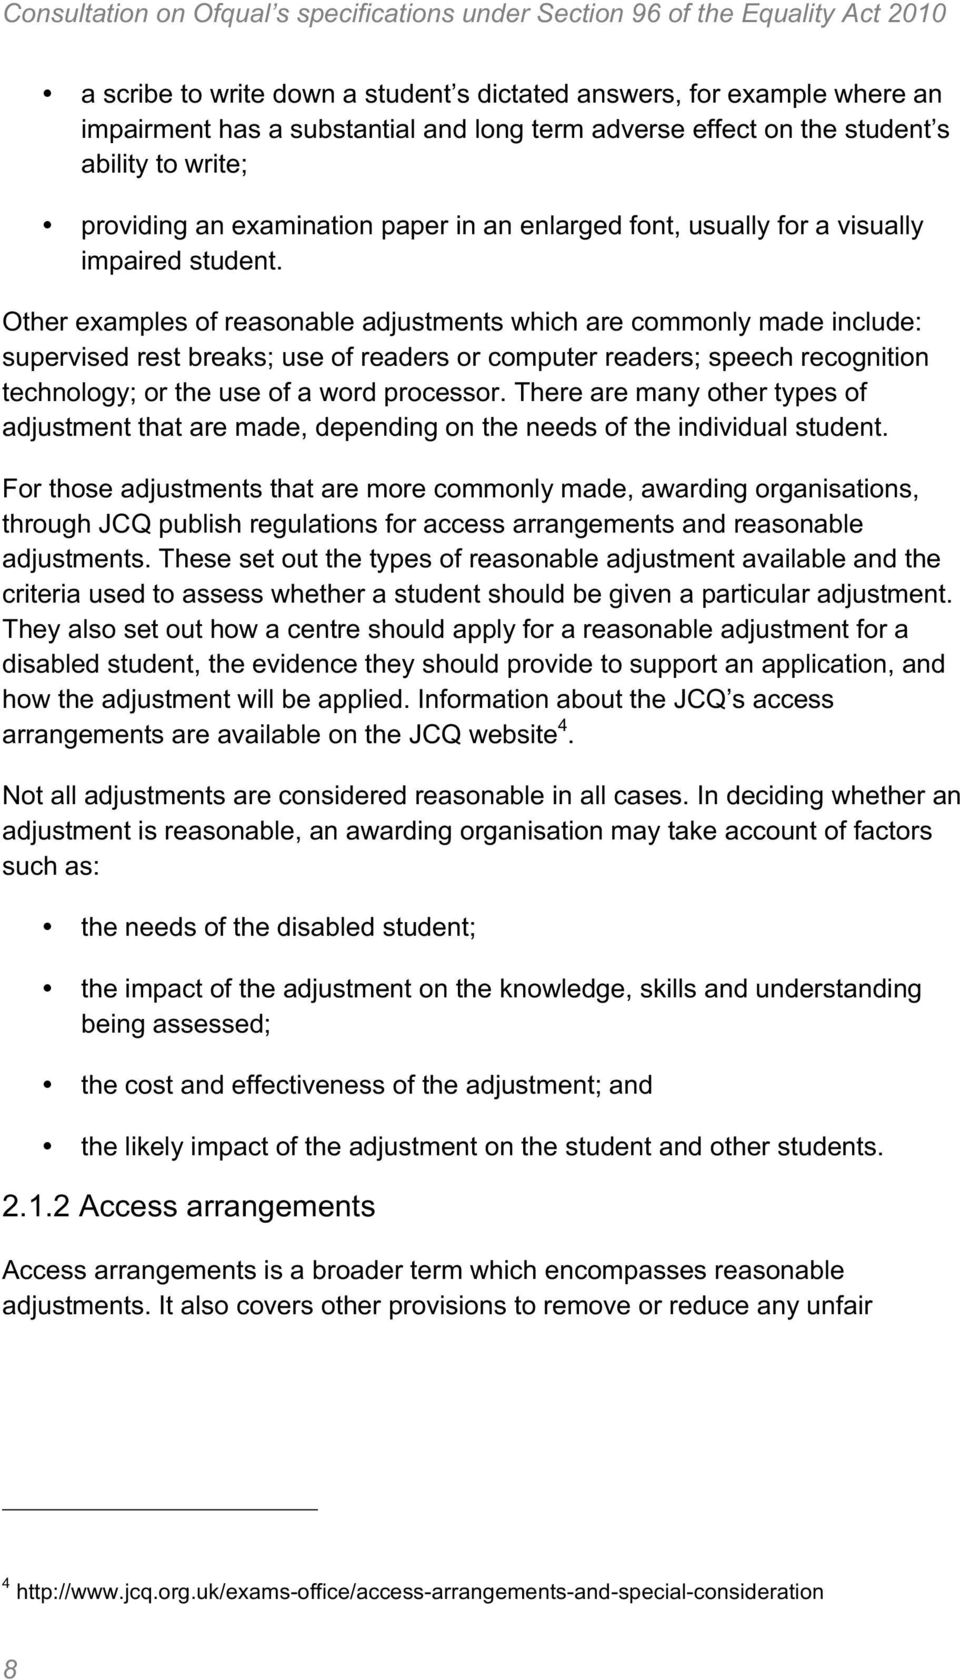 Other examples of reasonable adjustments which are commonly made include: supervised rest breaks; use of readers or computer readers; speech recognition technology; or the use of a word processor.